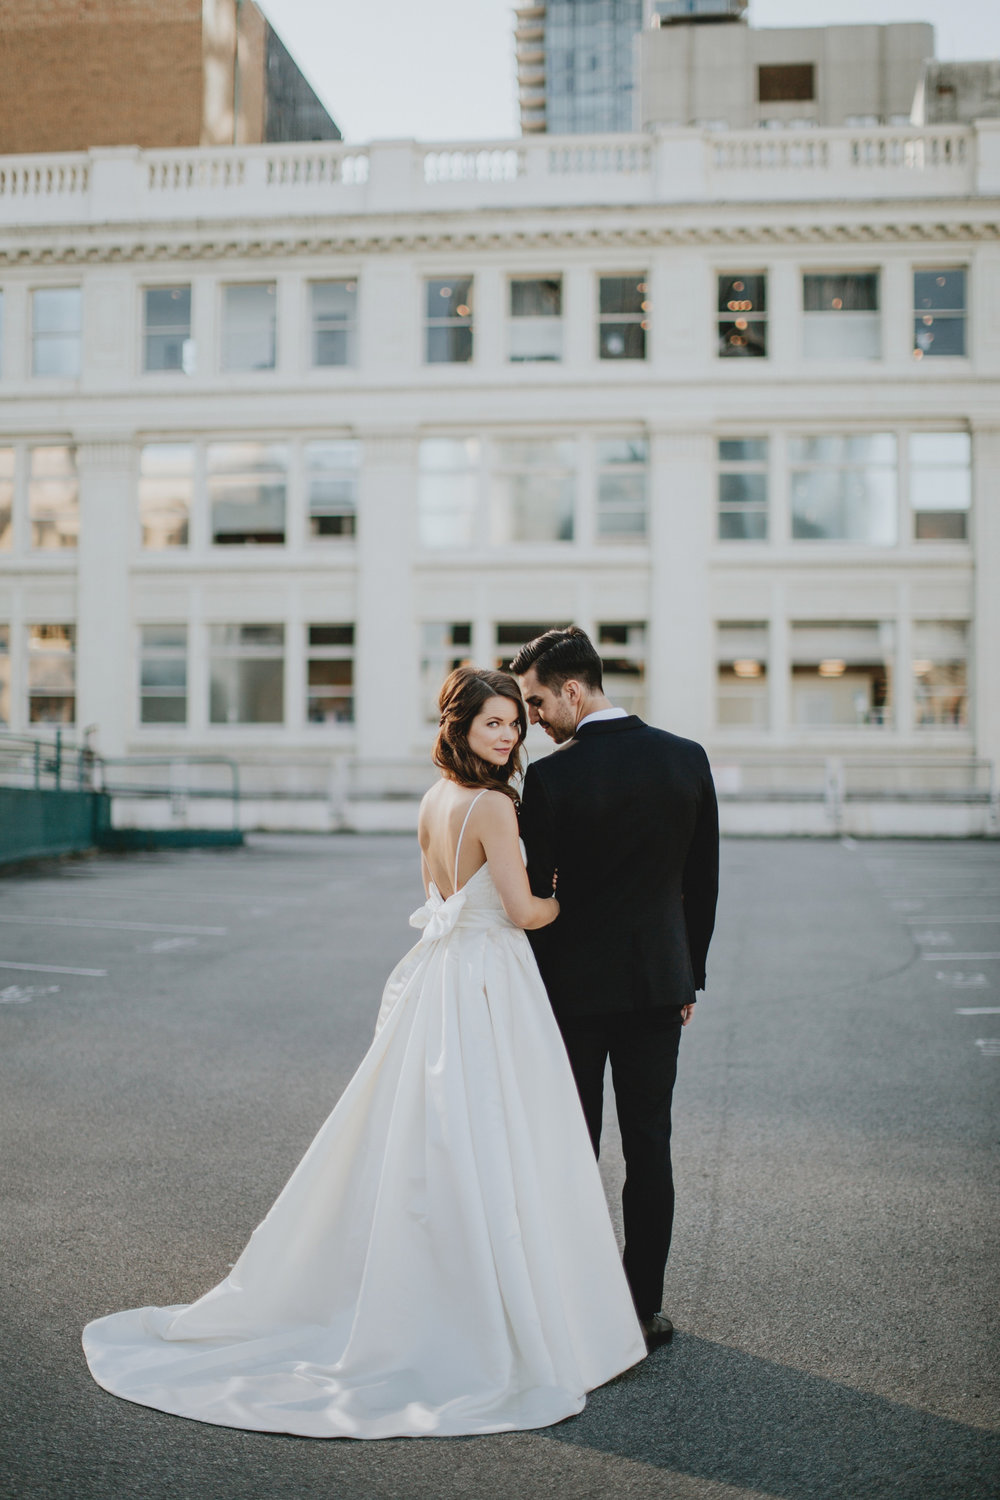 Courtney-Thom-Wedding-Squarespace-1.jpg